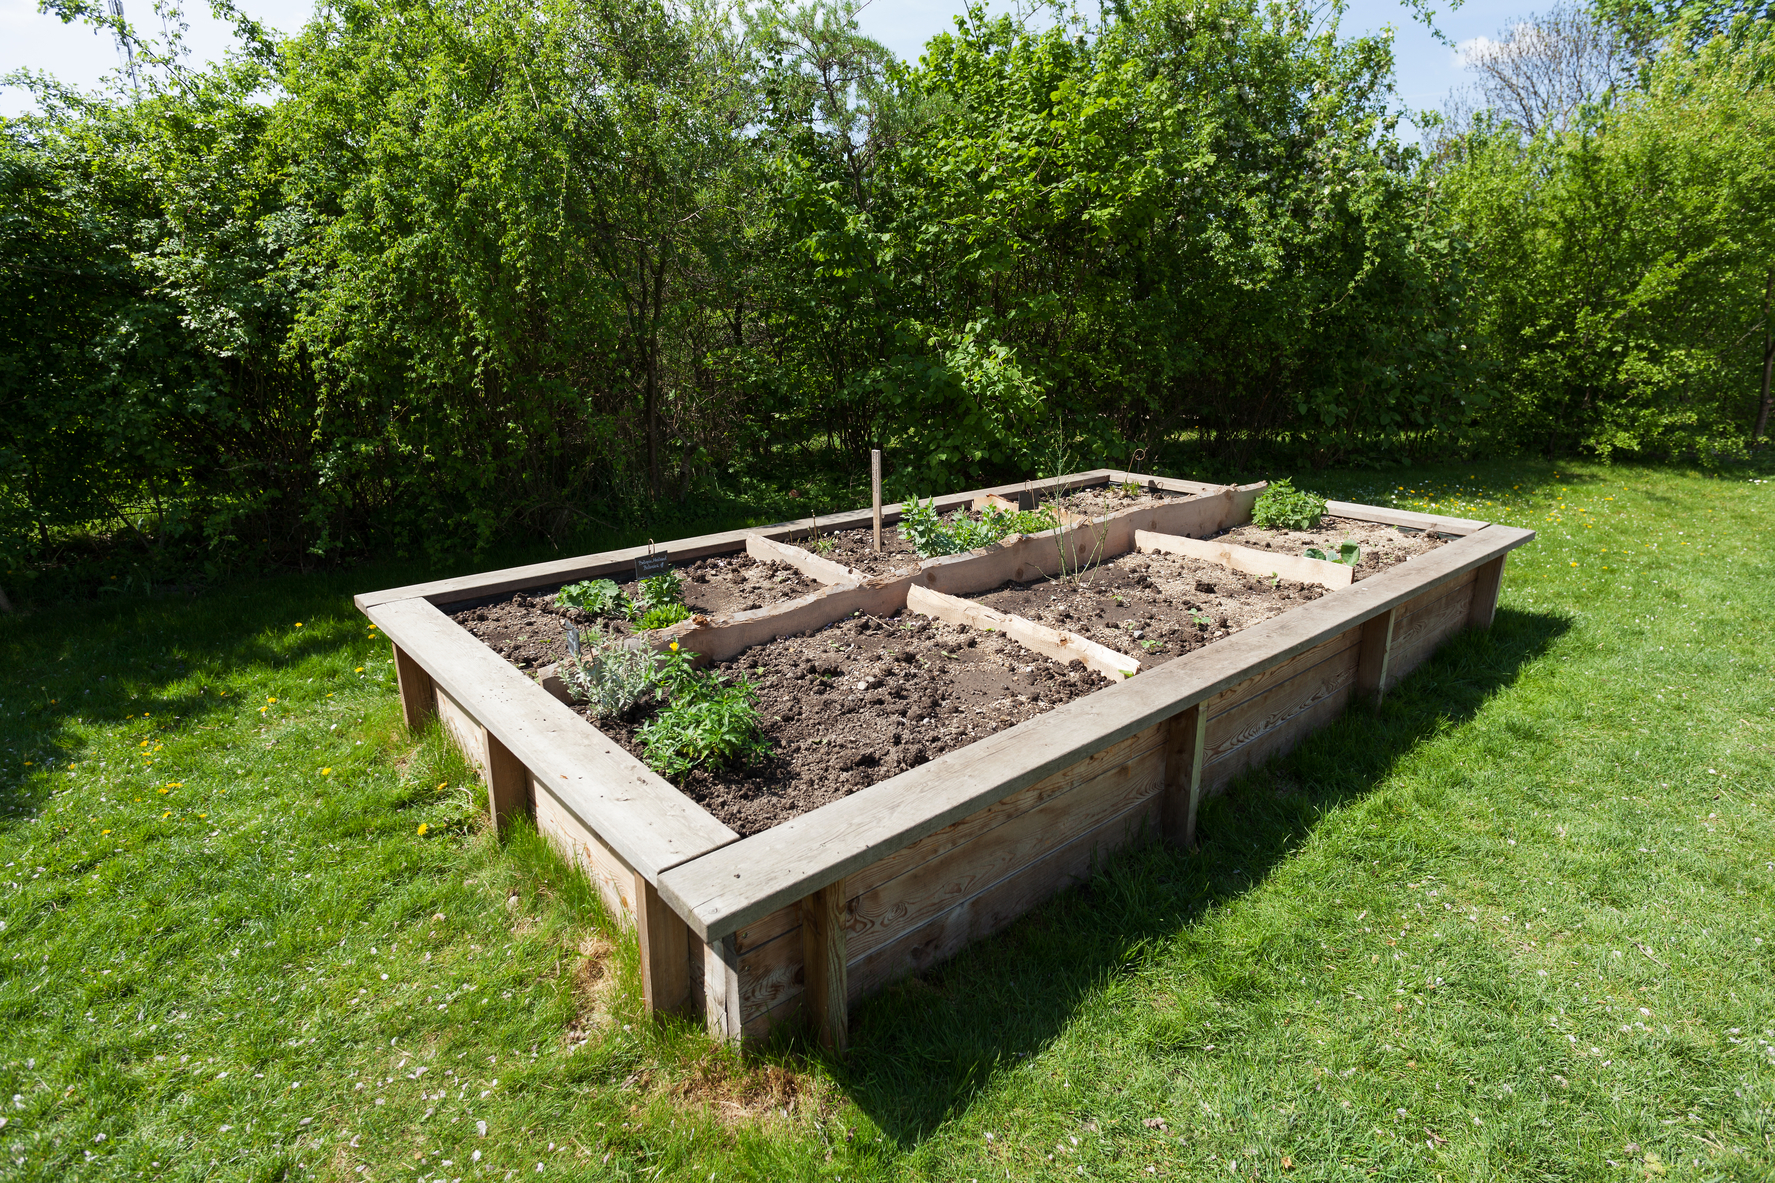 How to build raised garden beds tips for raised bed gardening the old farmer s almanac